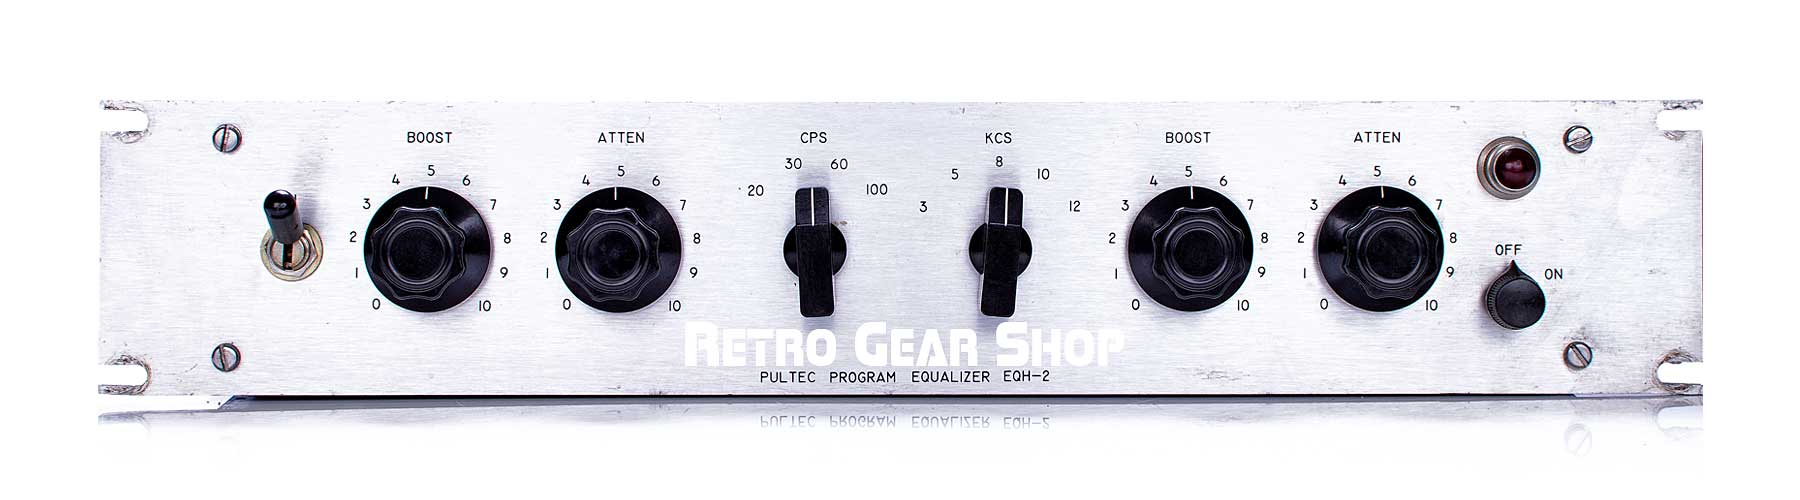 Pultec EQH-2 Program Equalizer Front